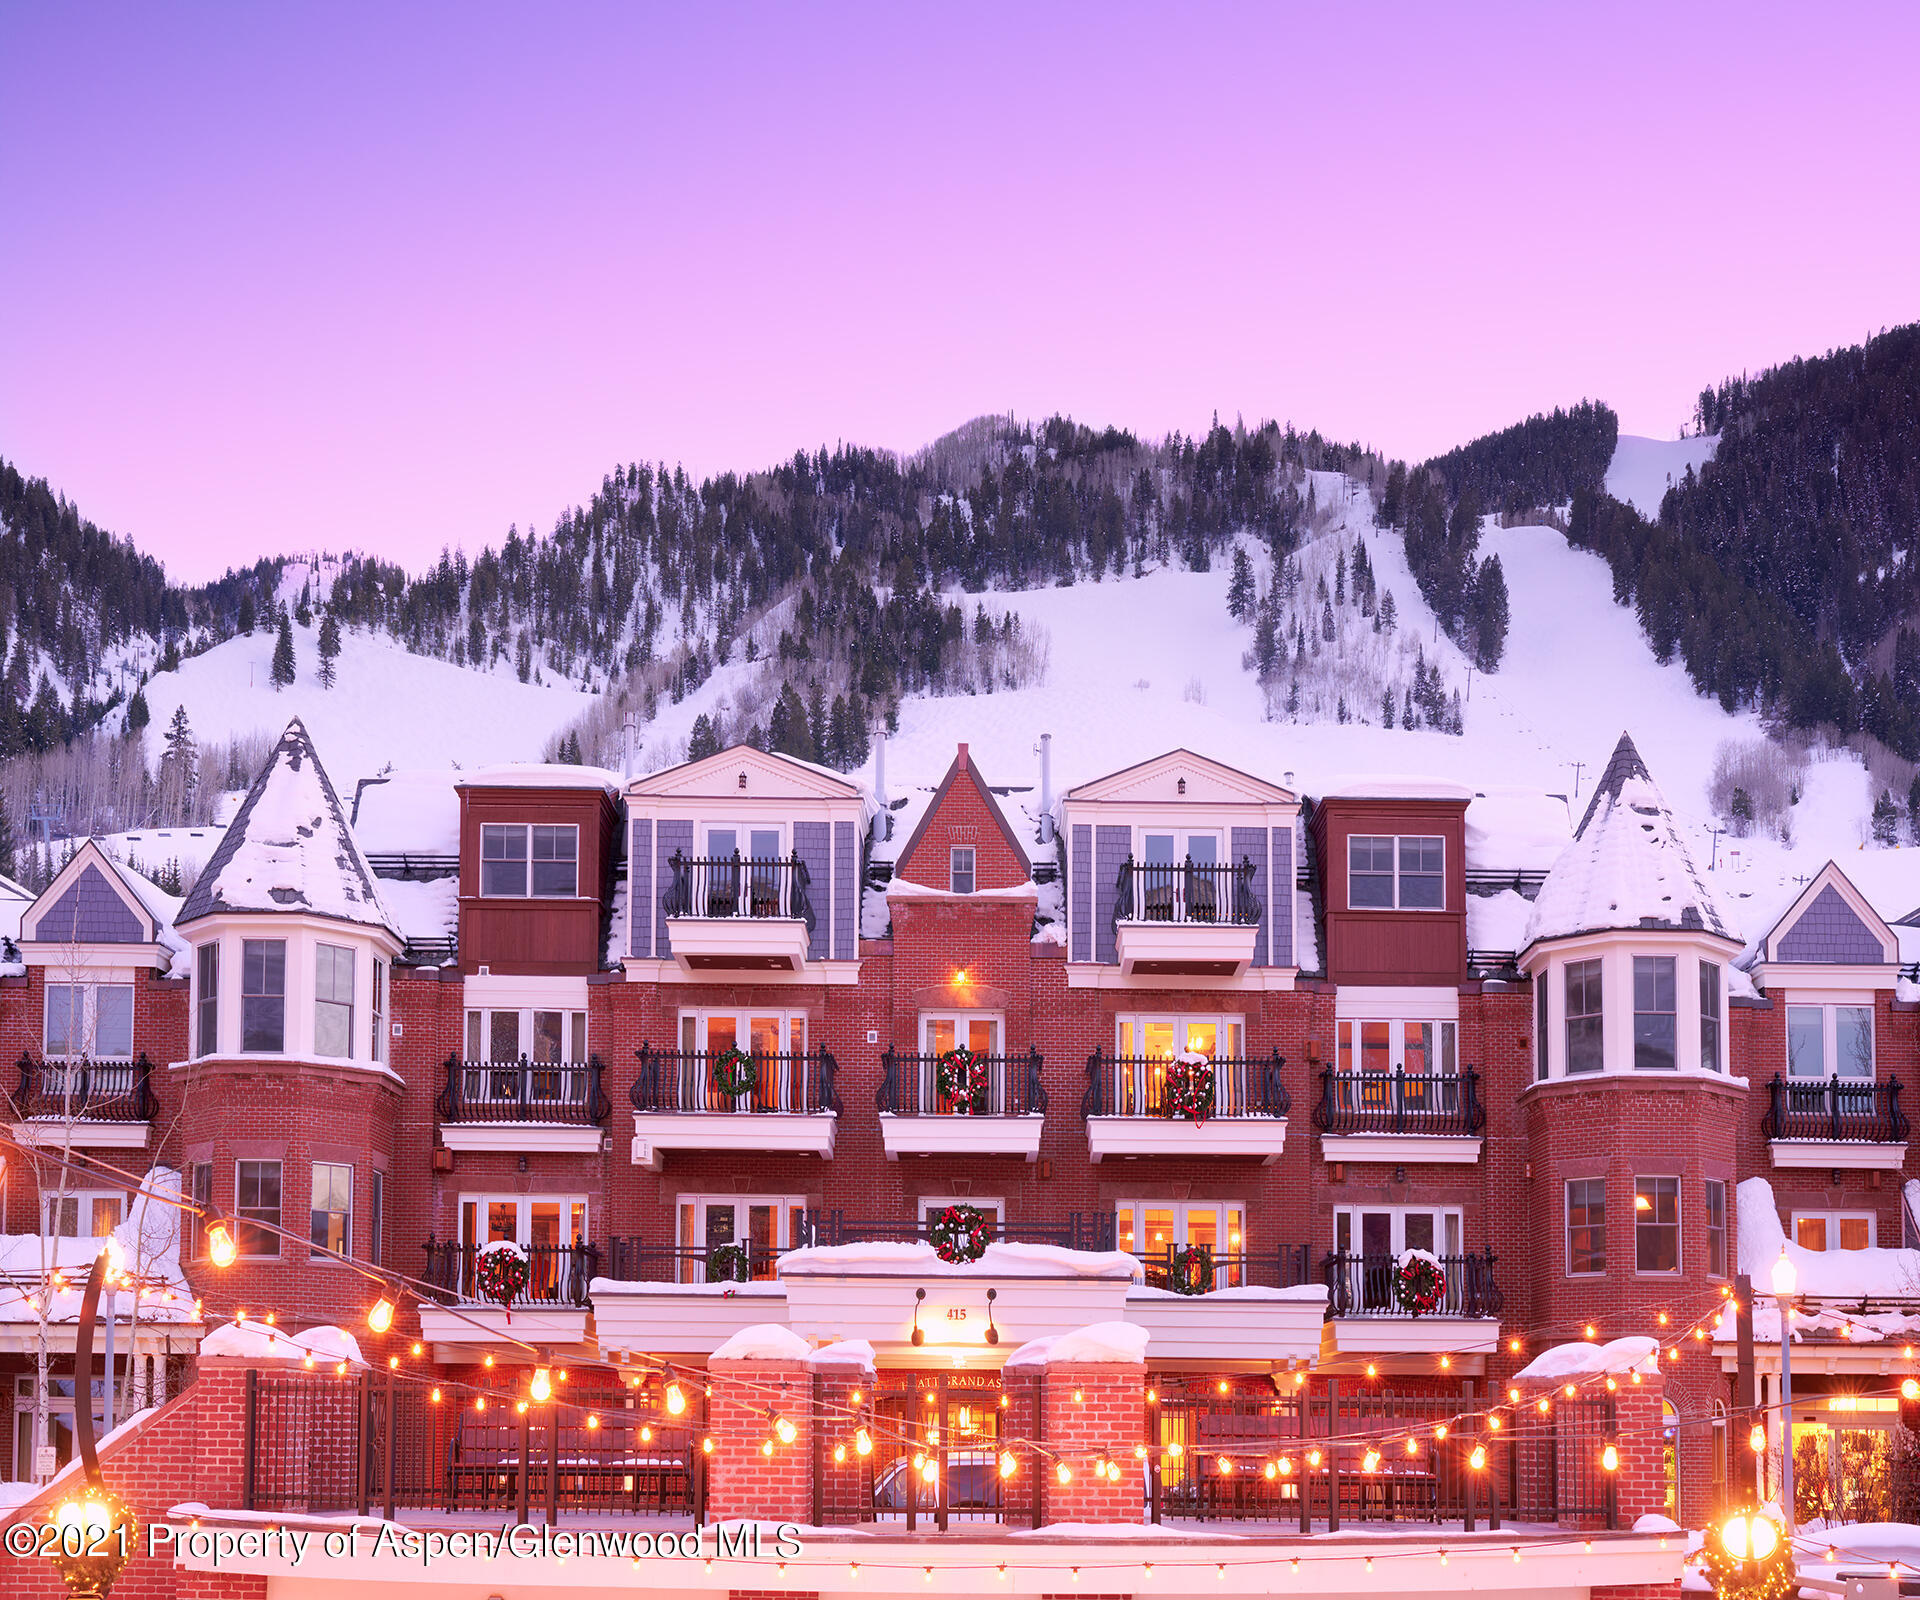 Enjoy Aspen's prime holiday weeks (Christmas/New Years) every year with fixed weeks 51/52 plus an approx. 20 days of float time. Unit 29 is often referred to as the best unit in the building. Enjoy beautiful views overlooking town to Red Mountain. The spacious condo (2,321 sq.ft.) is located on the 3rd floor.  Host a large group of friends and family with bedding for 8+ (see floor plan/bedding under documents tab)! Hyatt Grand Aspen offers outstanding service and amenities. Walk to restaurants, shopping, gondola and everything Aspen has to offer. 2021 dates: Sat, December 18th to Sat, January 8th (3 weeks!). 2022 dates: Sat, December 24th to Sat, January 7th.